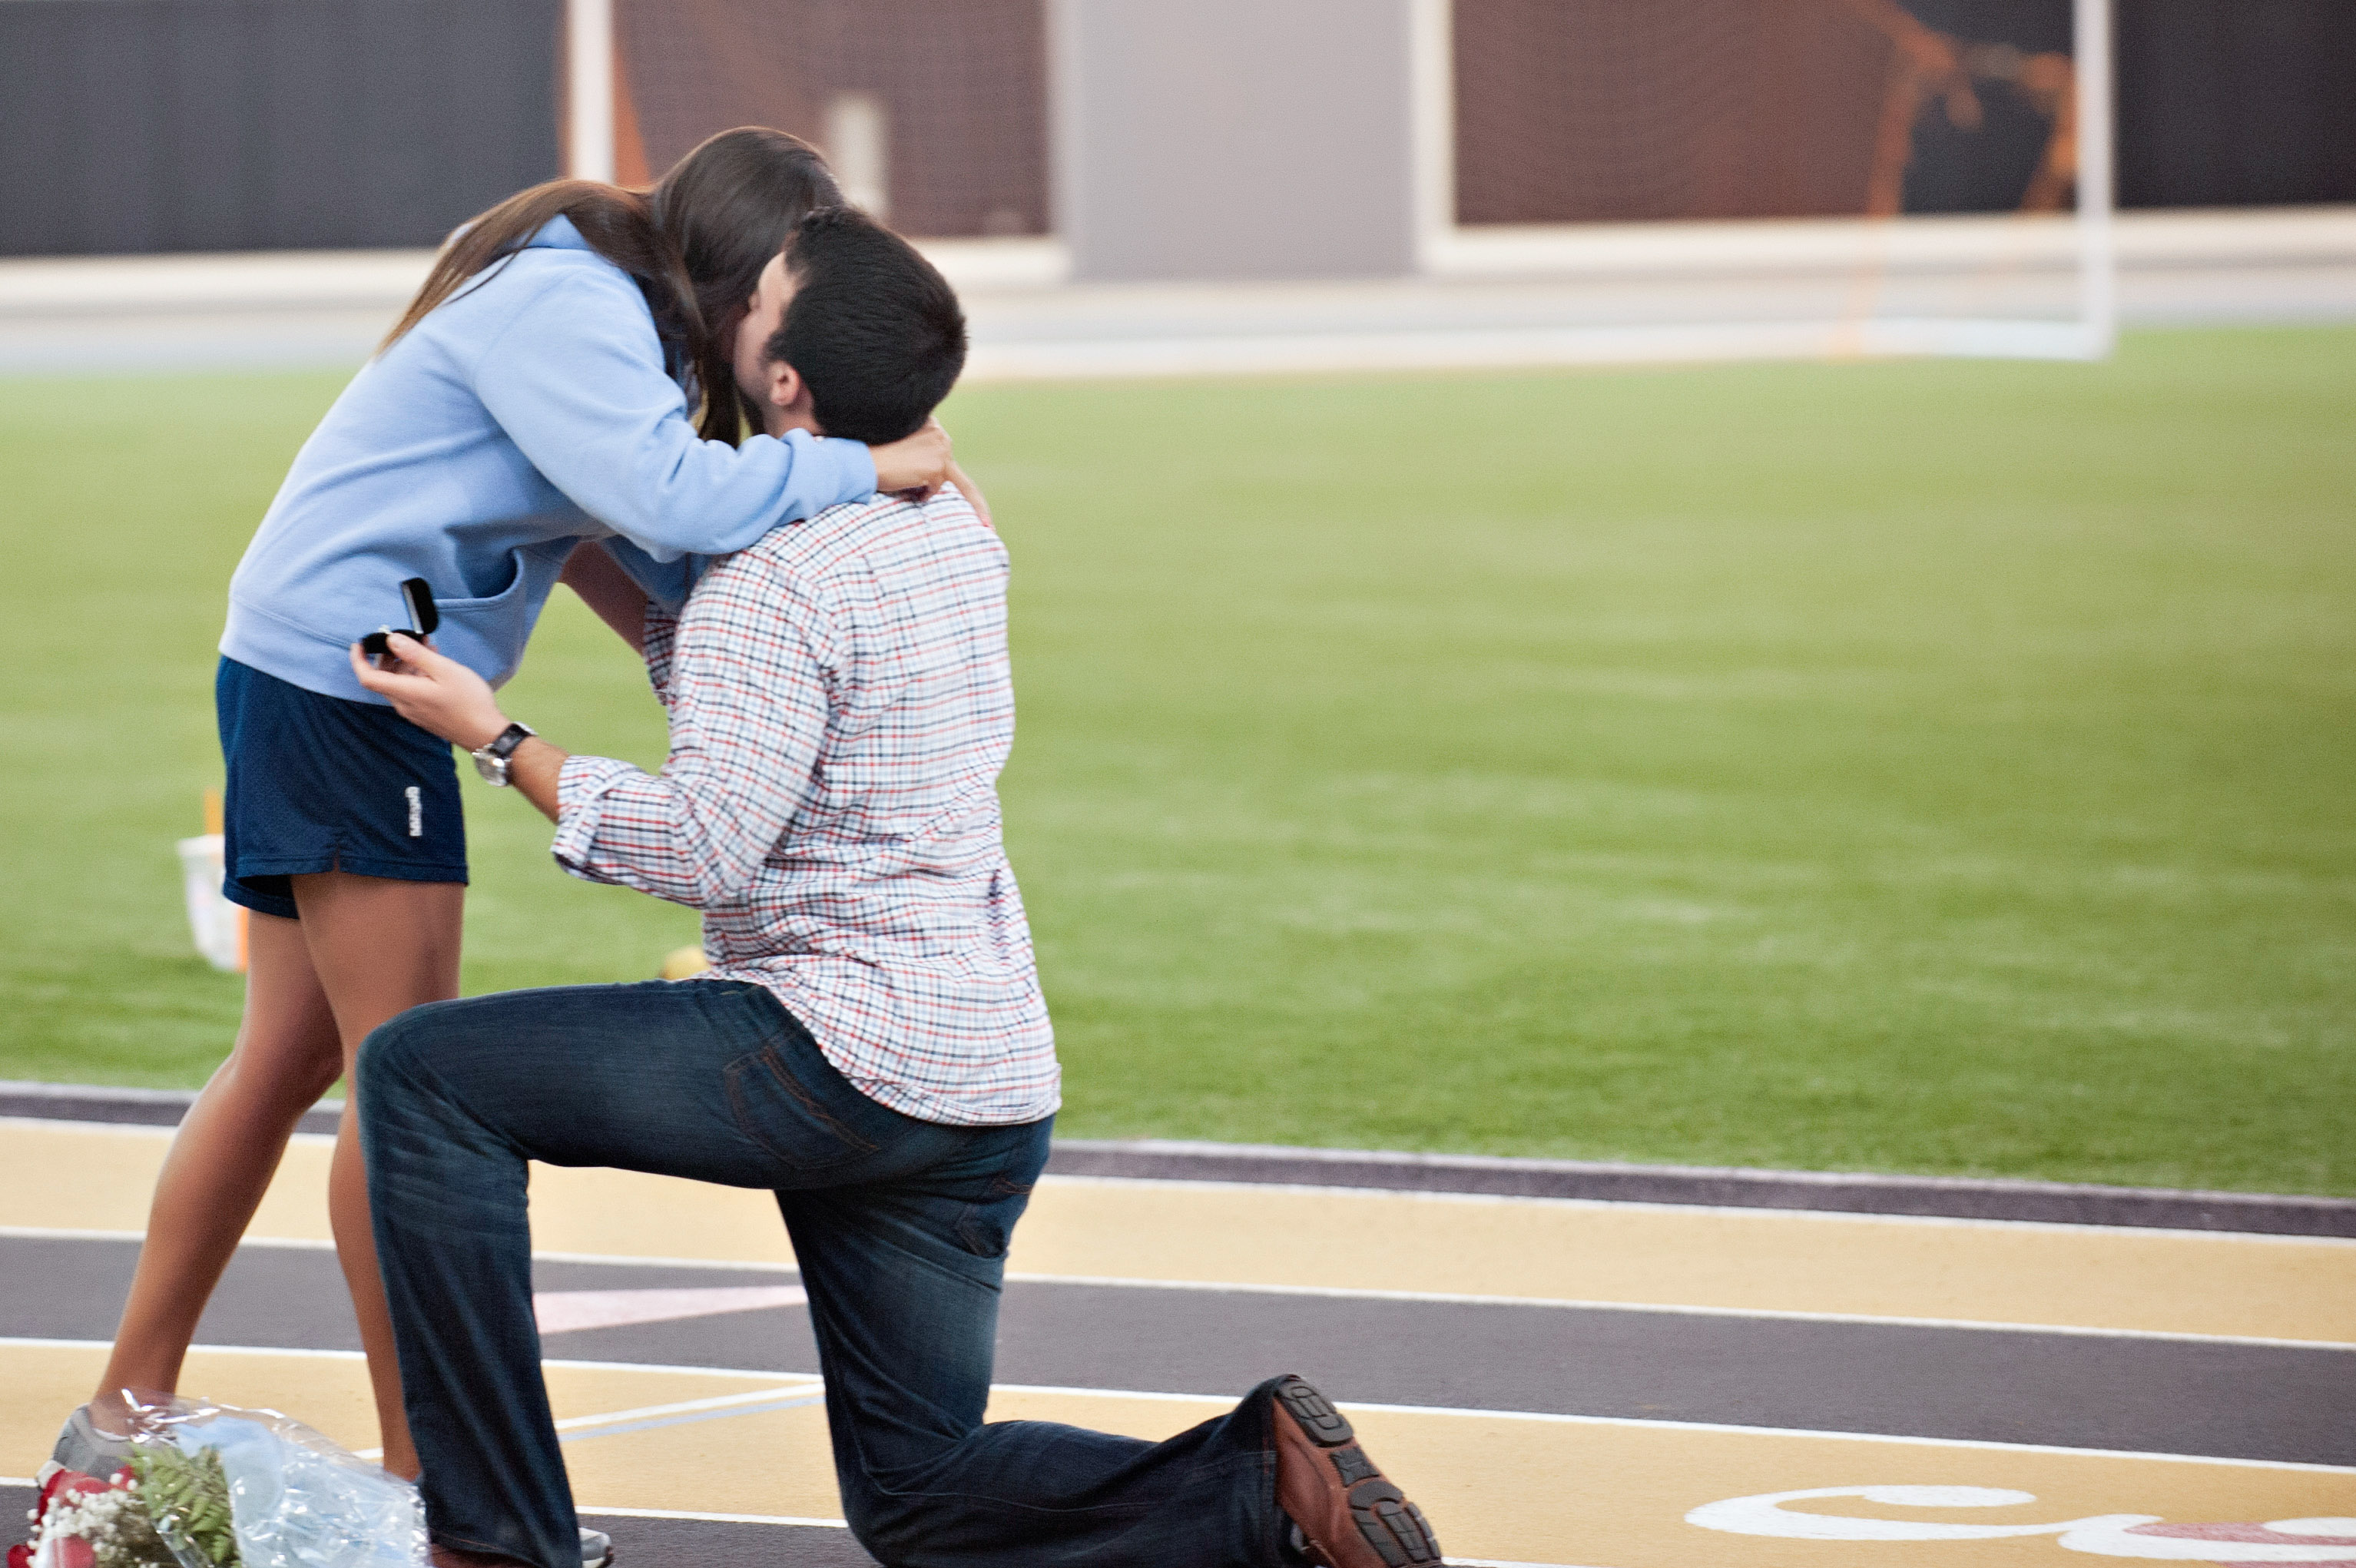 Image 11 of Marriage Proposal at Lacrosse Practice